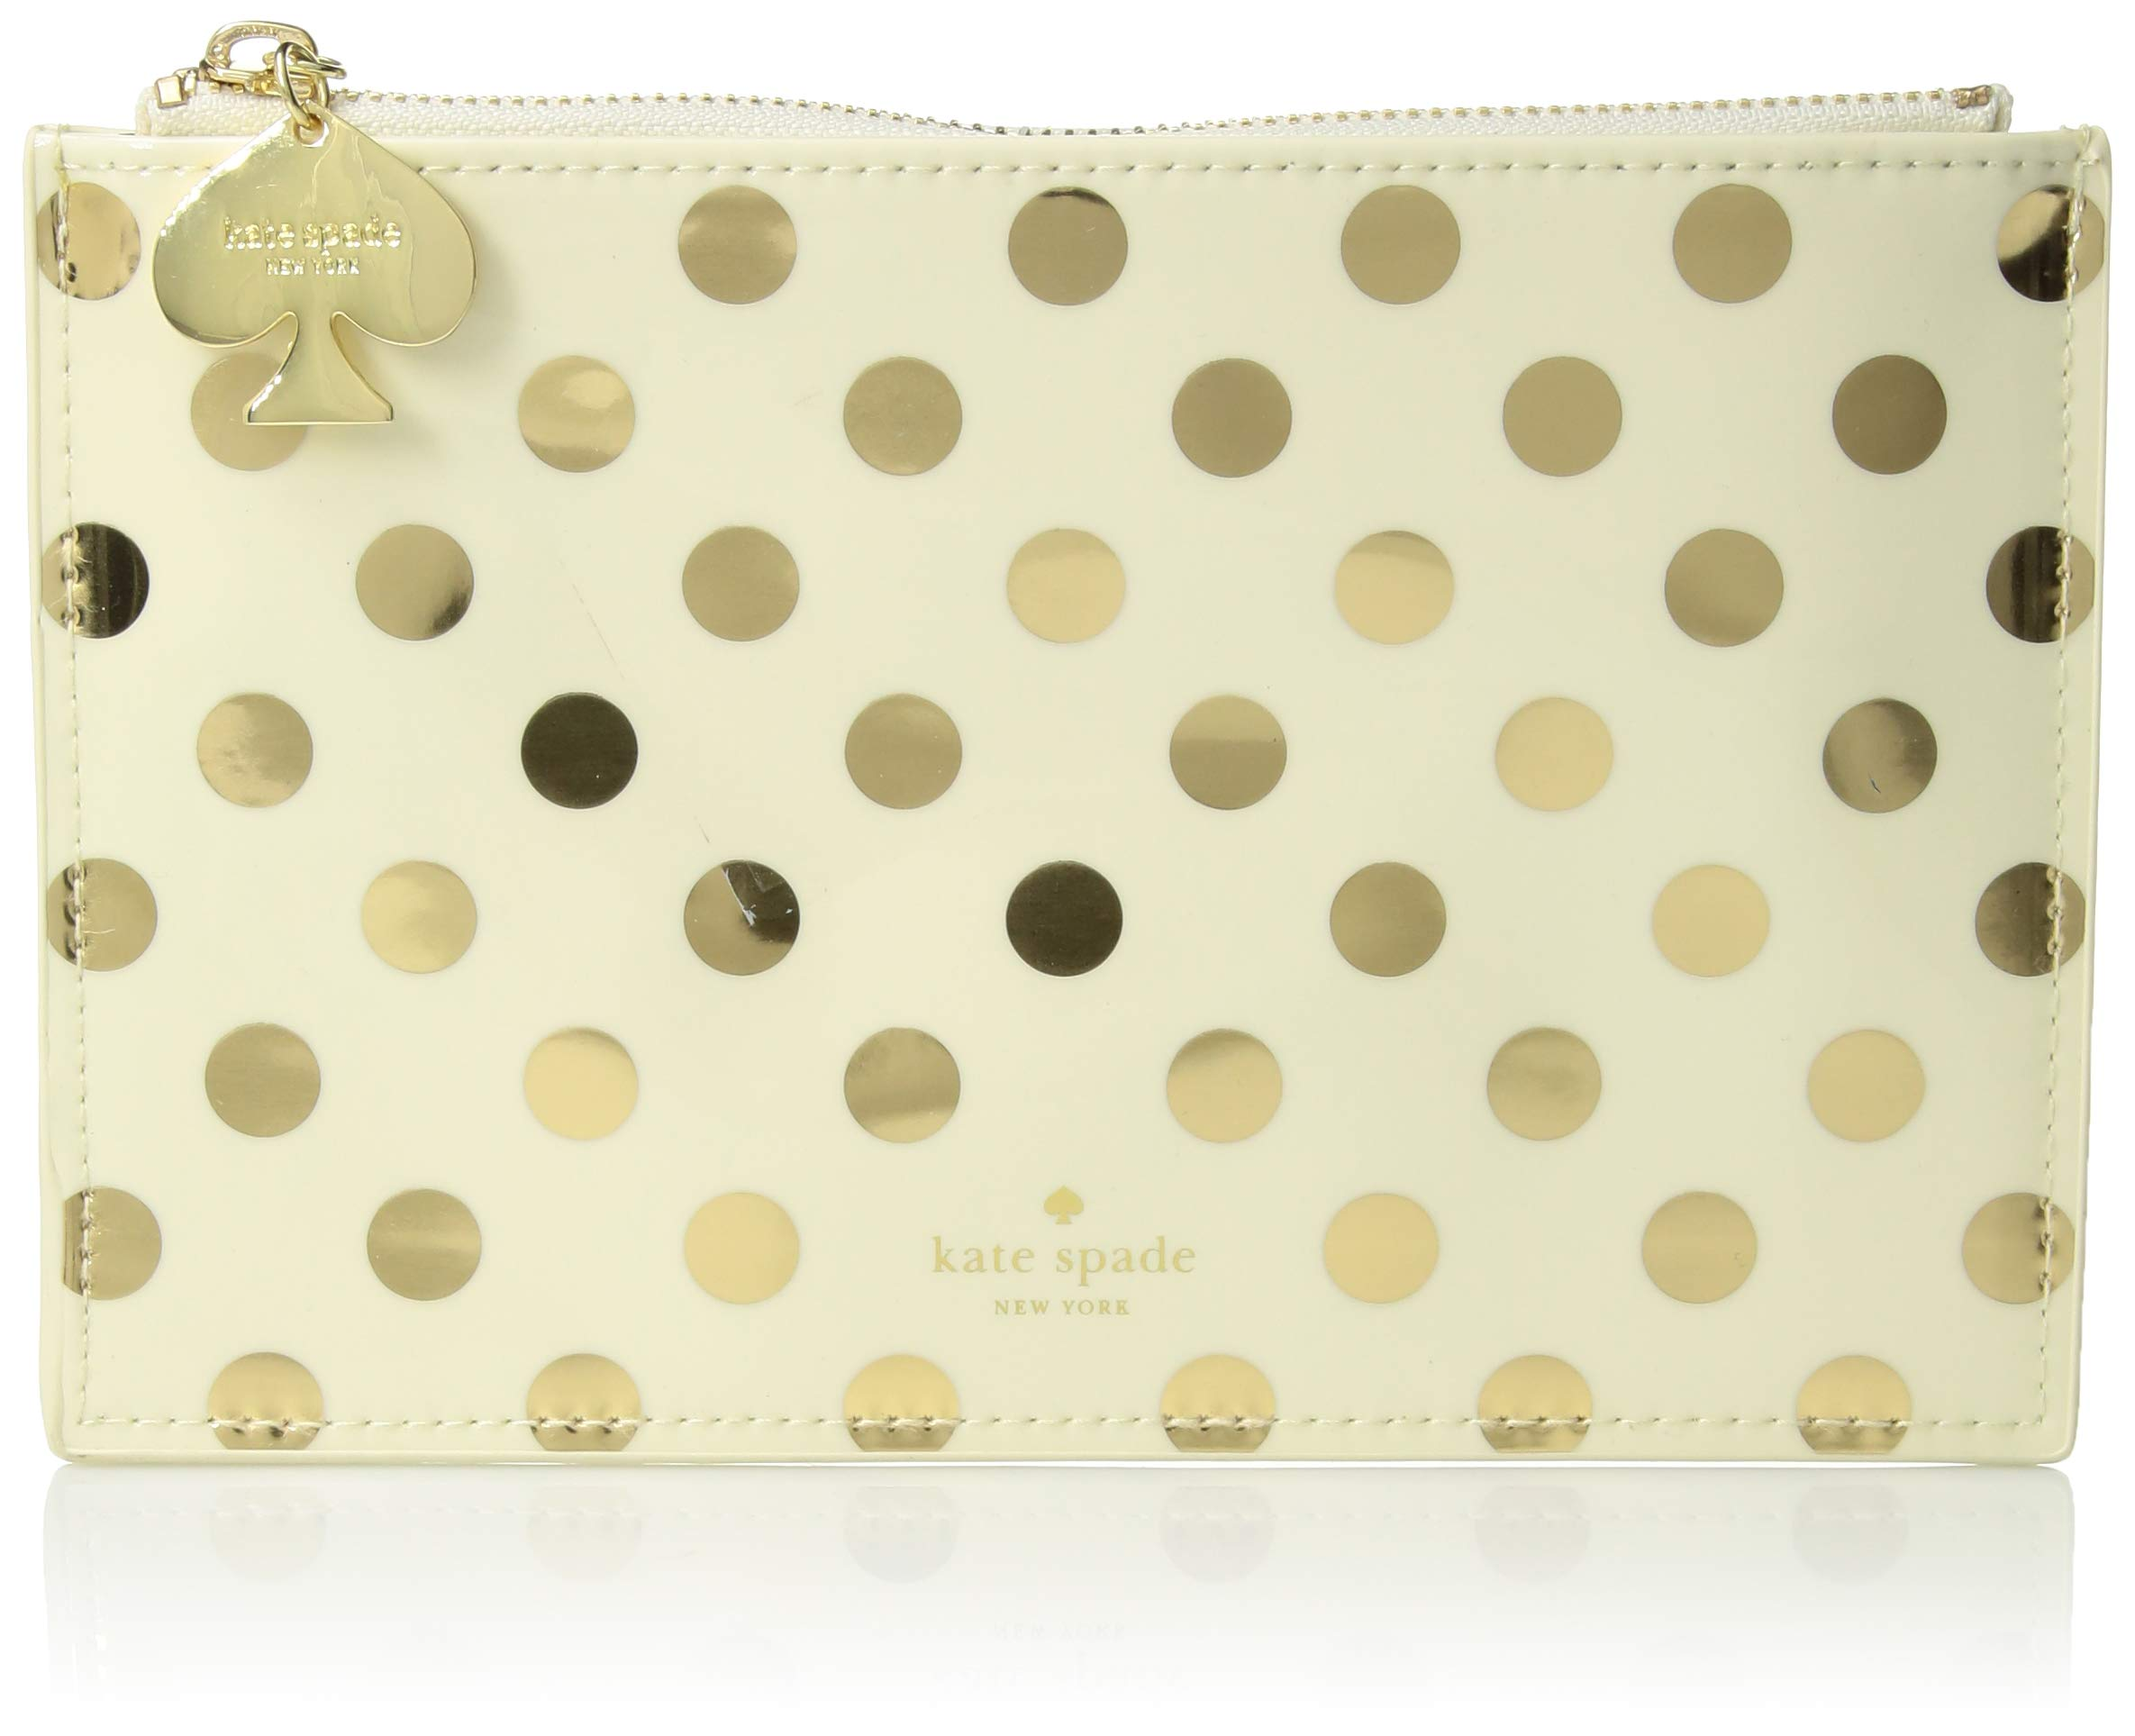 kate spade new york Pencil Pouch - Gold Dots by Kate Spade New York